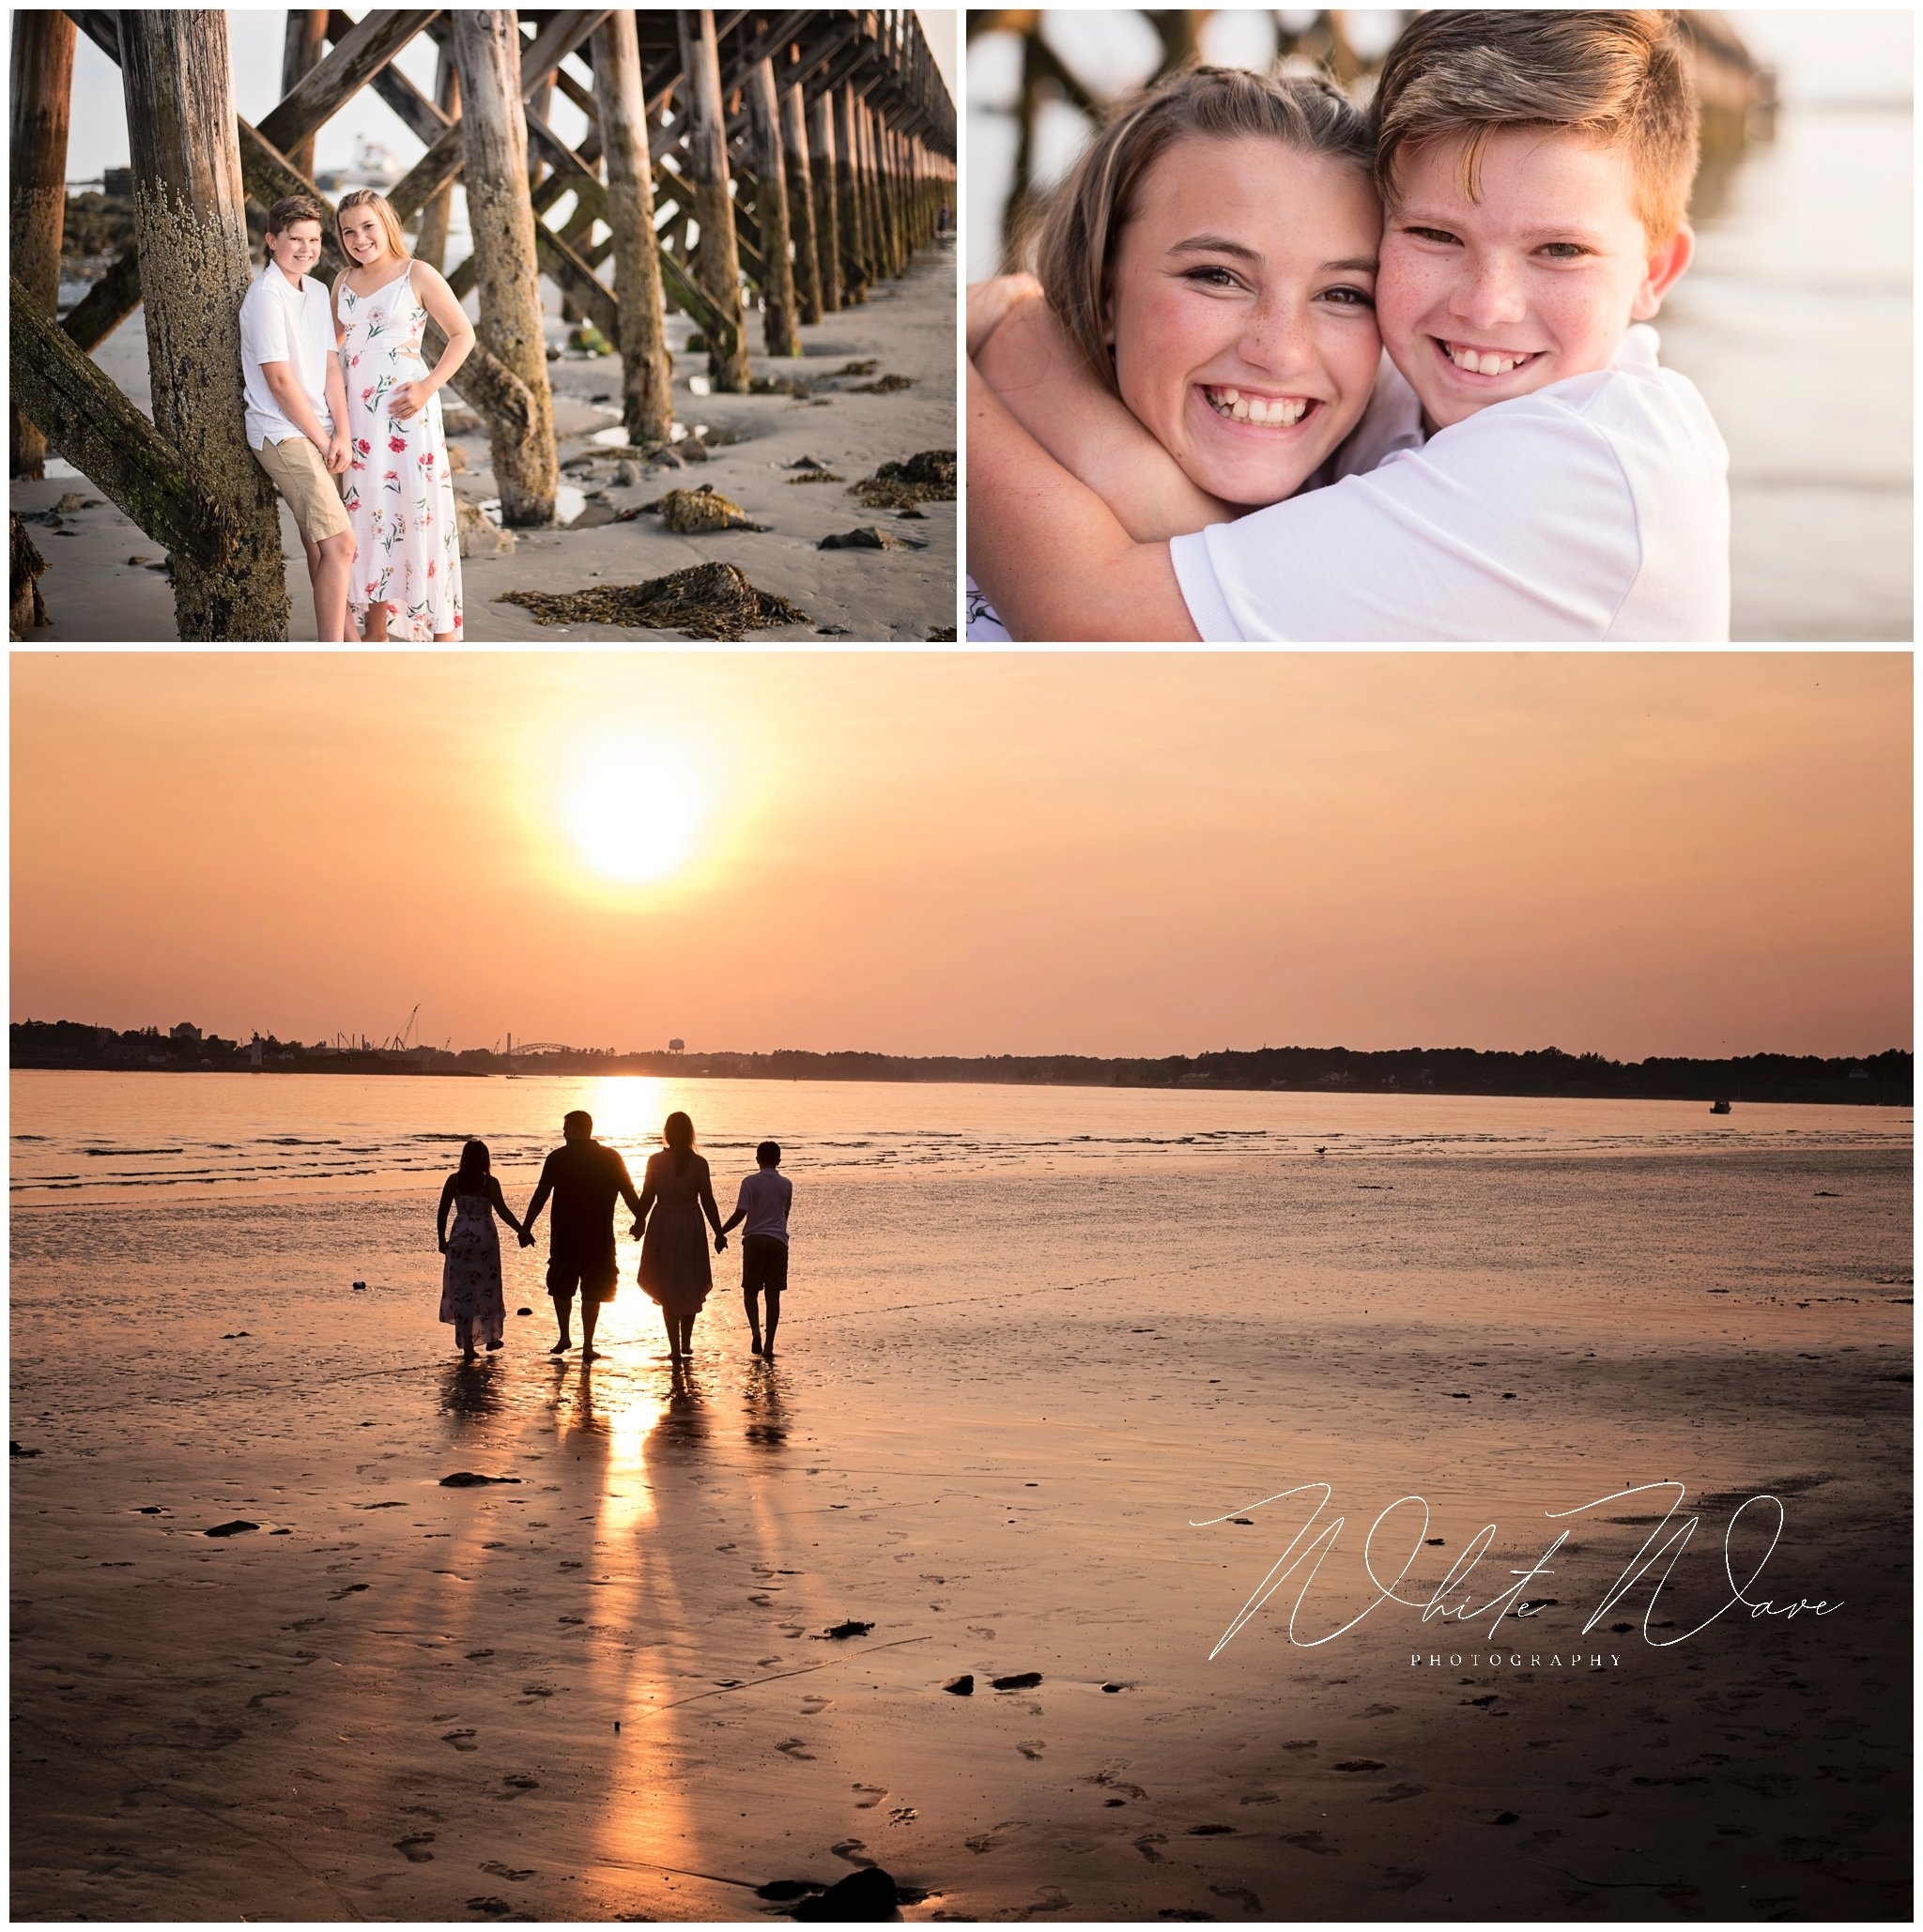 tips on what to wear for your summer family portrait by family photographer White Wave Photography